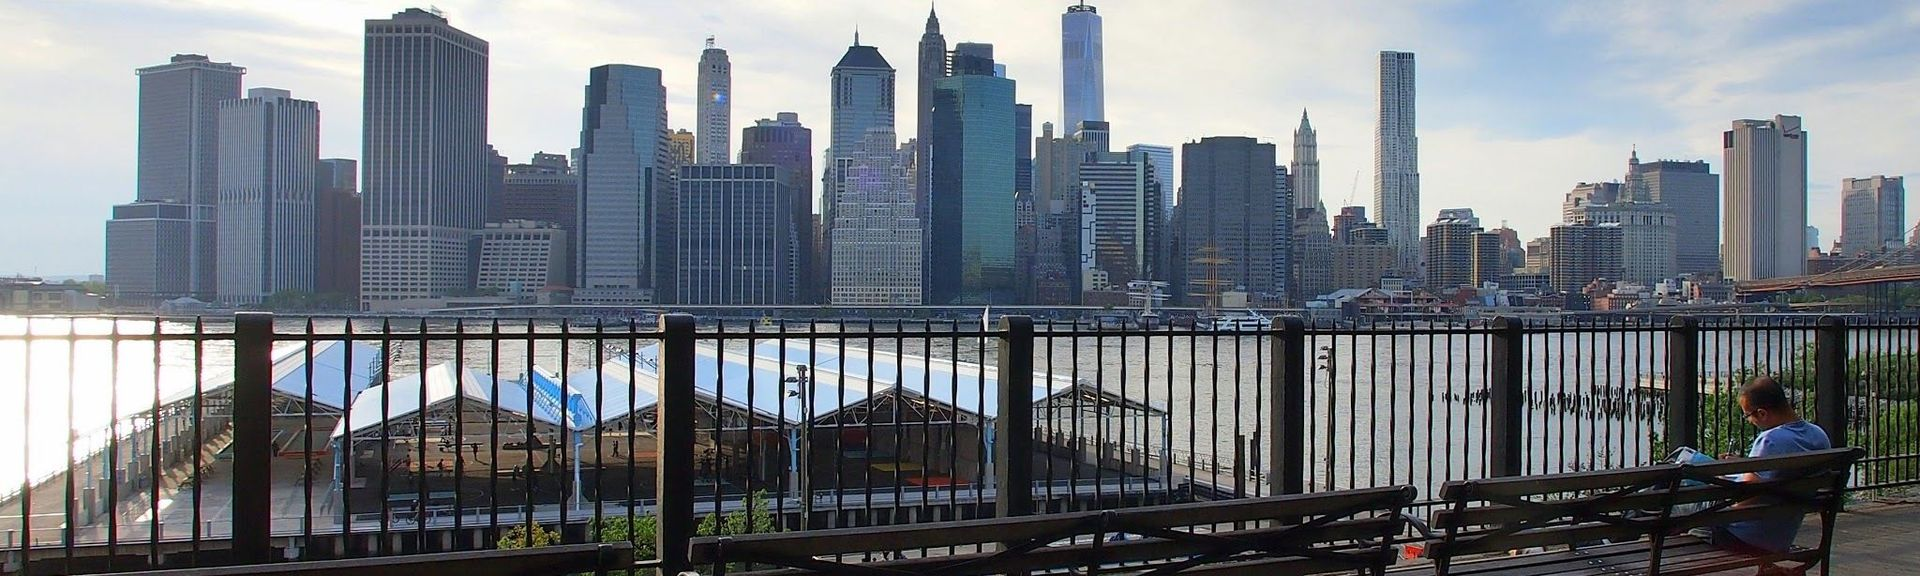 Brooklyn Heights Promenade, Brooklyn, NY, USA